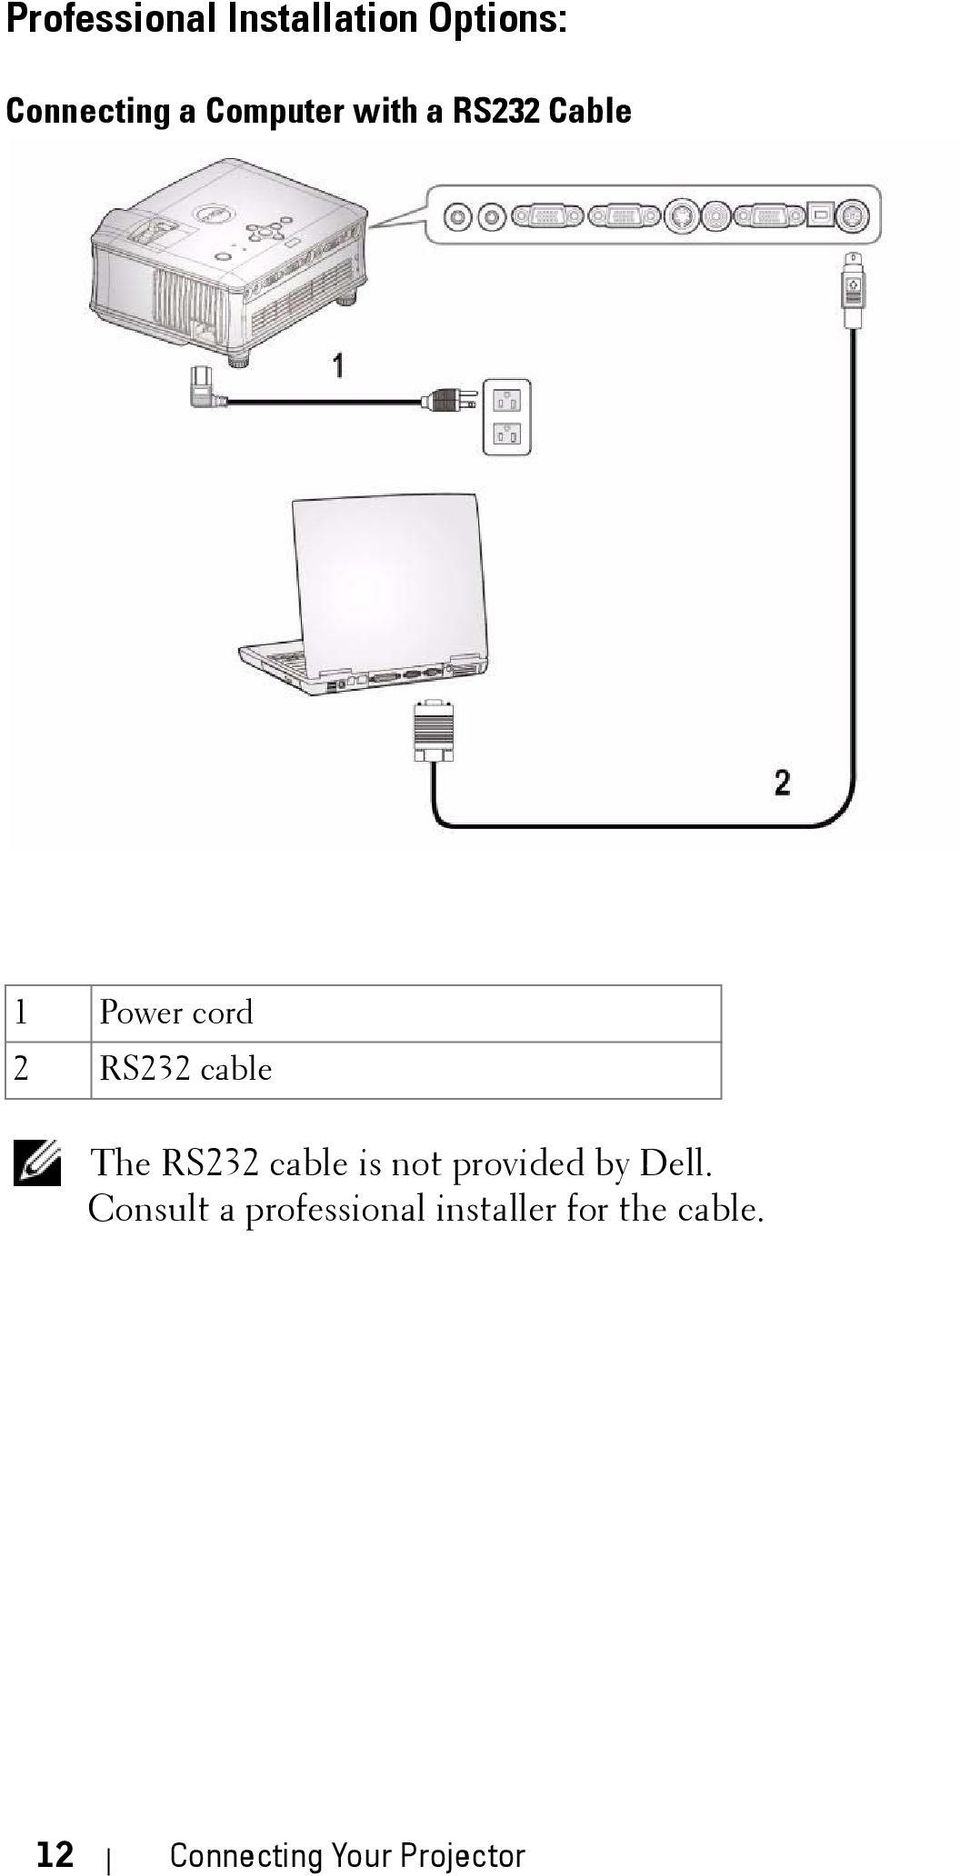 The RS232 cable is not provided by Dell.